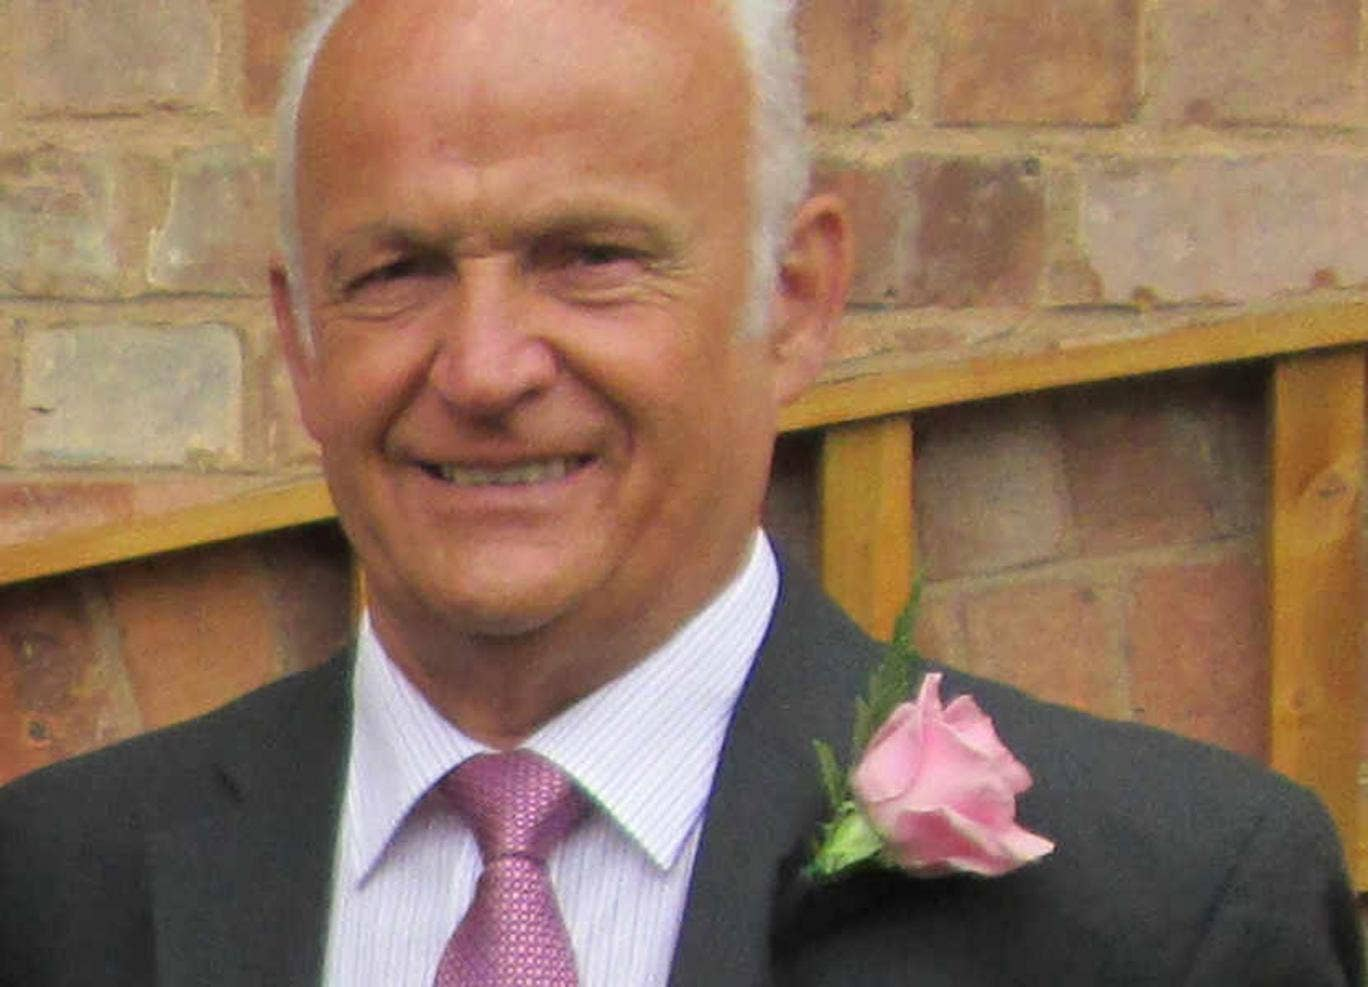 74-year-old George Searle, who was pronounced dead on the city's Stafford Road in July